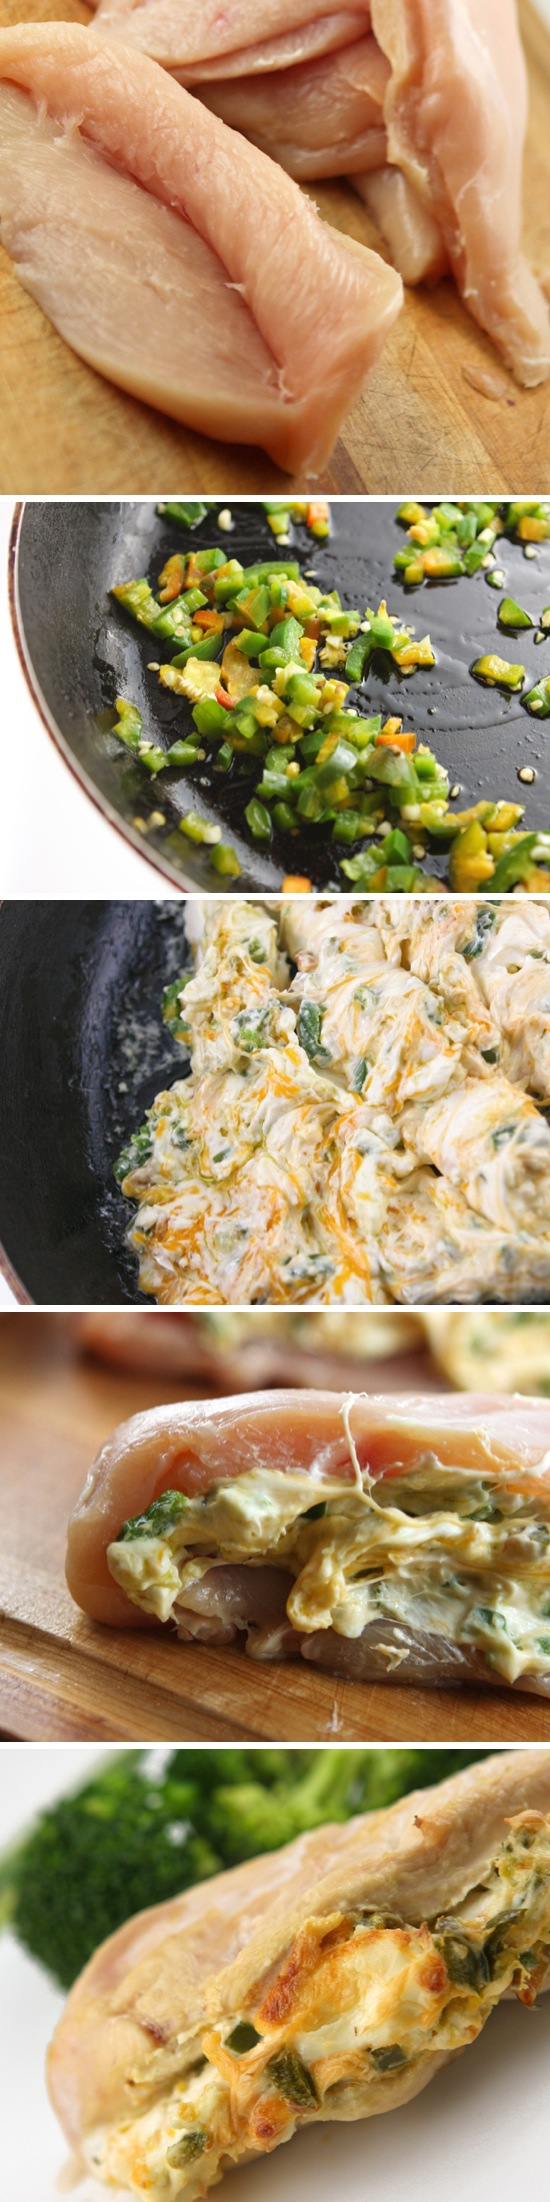 Jalapeno-Cream-Cheese-Stuffed-Chicken-Breasts-Recipe